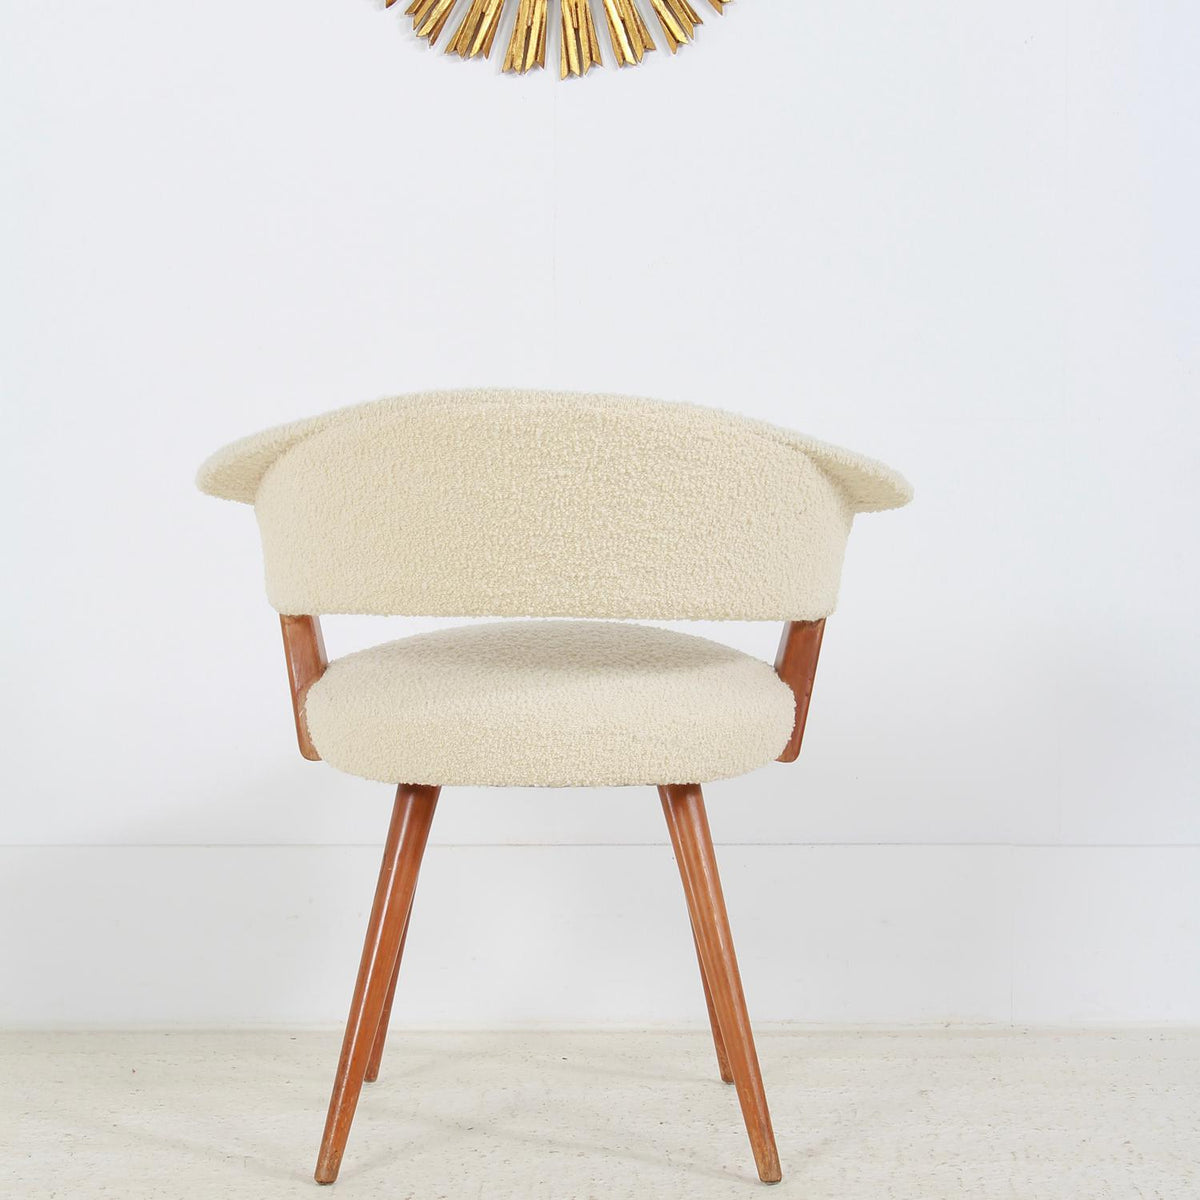 Stylish 1950s Teak Chair by Hans Mitzlaff for Soloform Germany